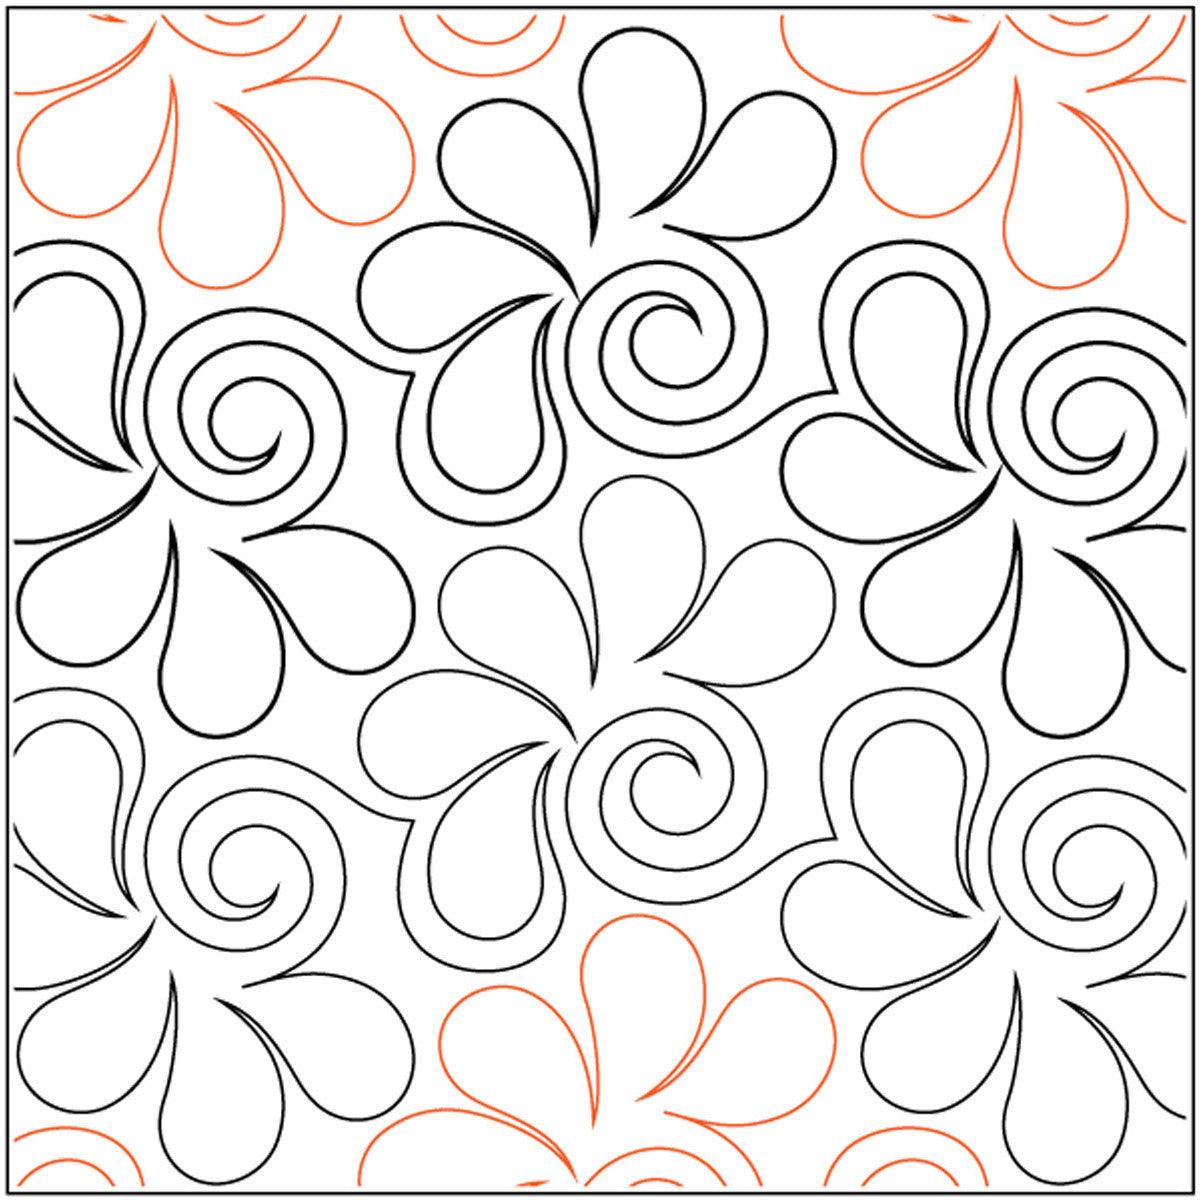 Quilt Stencils By Patricia Ritter Bauhaus 12in - Quilting-Warehouse